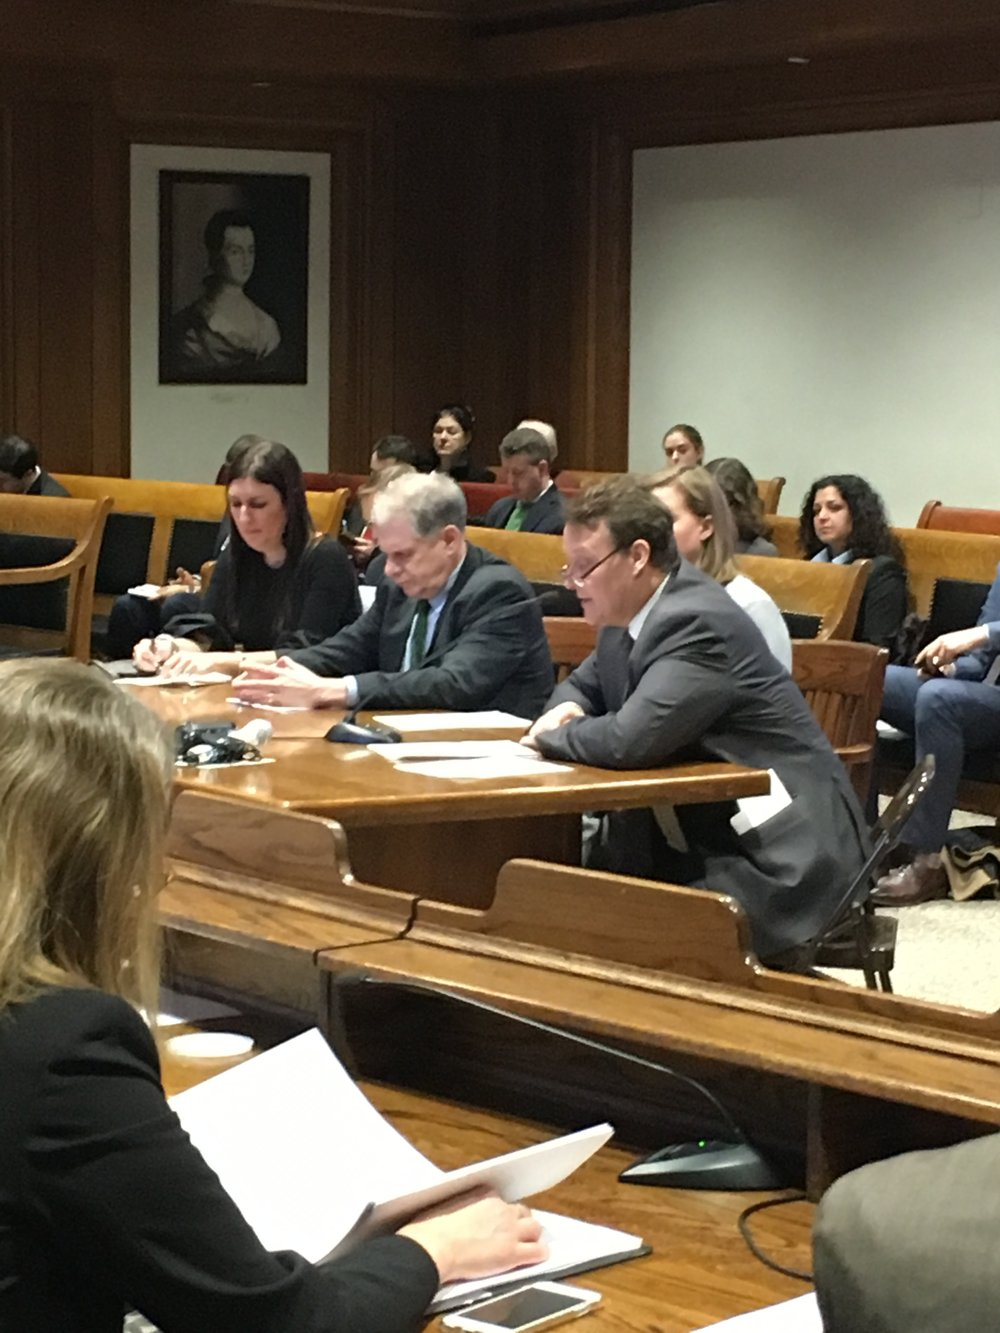 Senator Moore testifying before the Joint Committee on Housing alongside Representative Hannah Kane, Shrewsbury Board of Selectmen Chair John Lebeaux, and Assistant Town Manager Kristen Las.